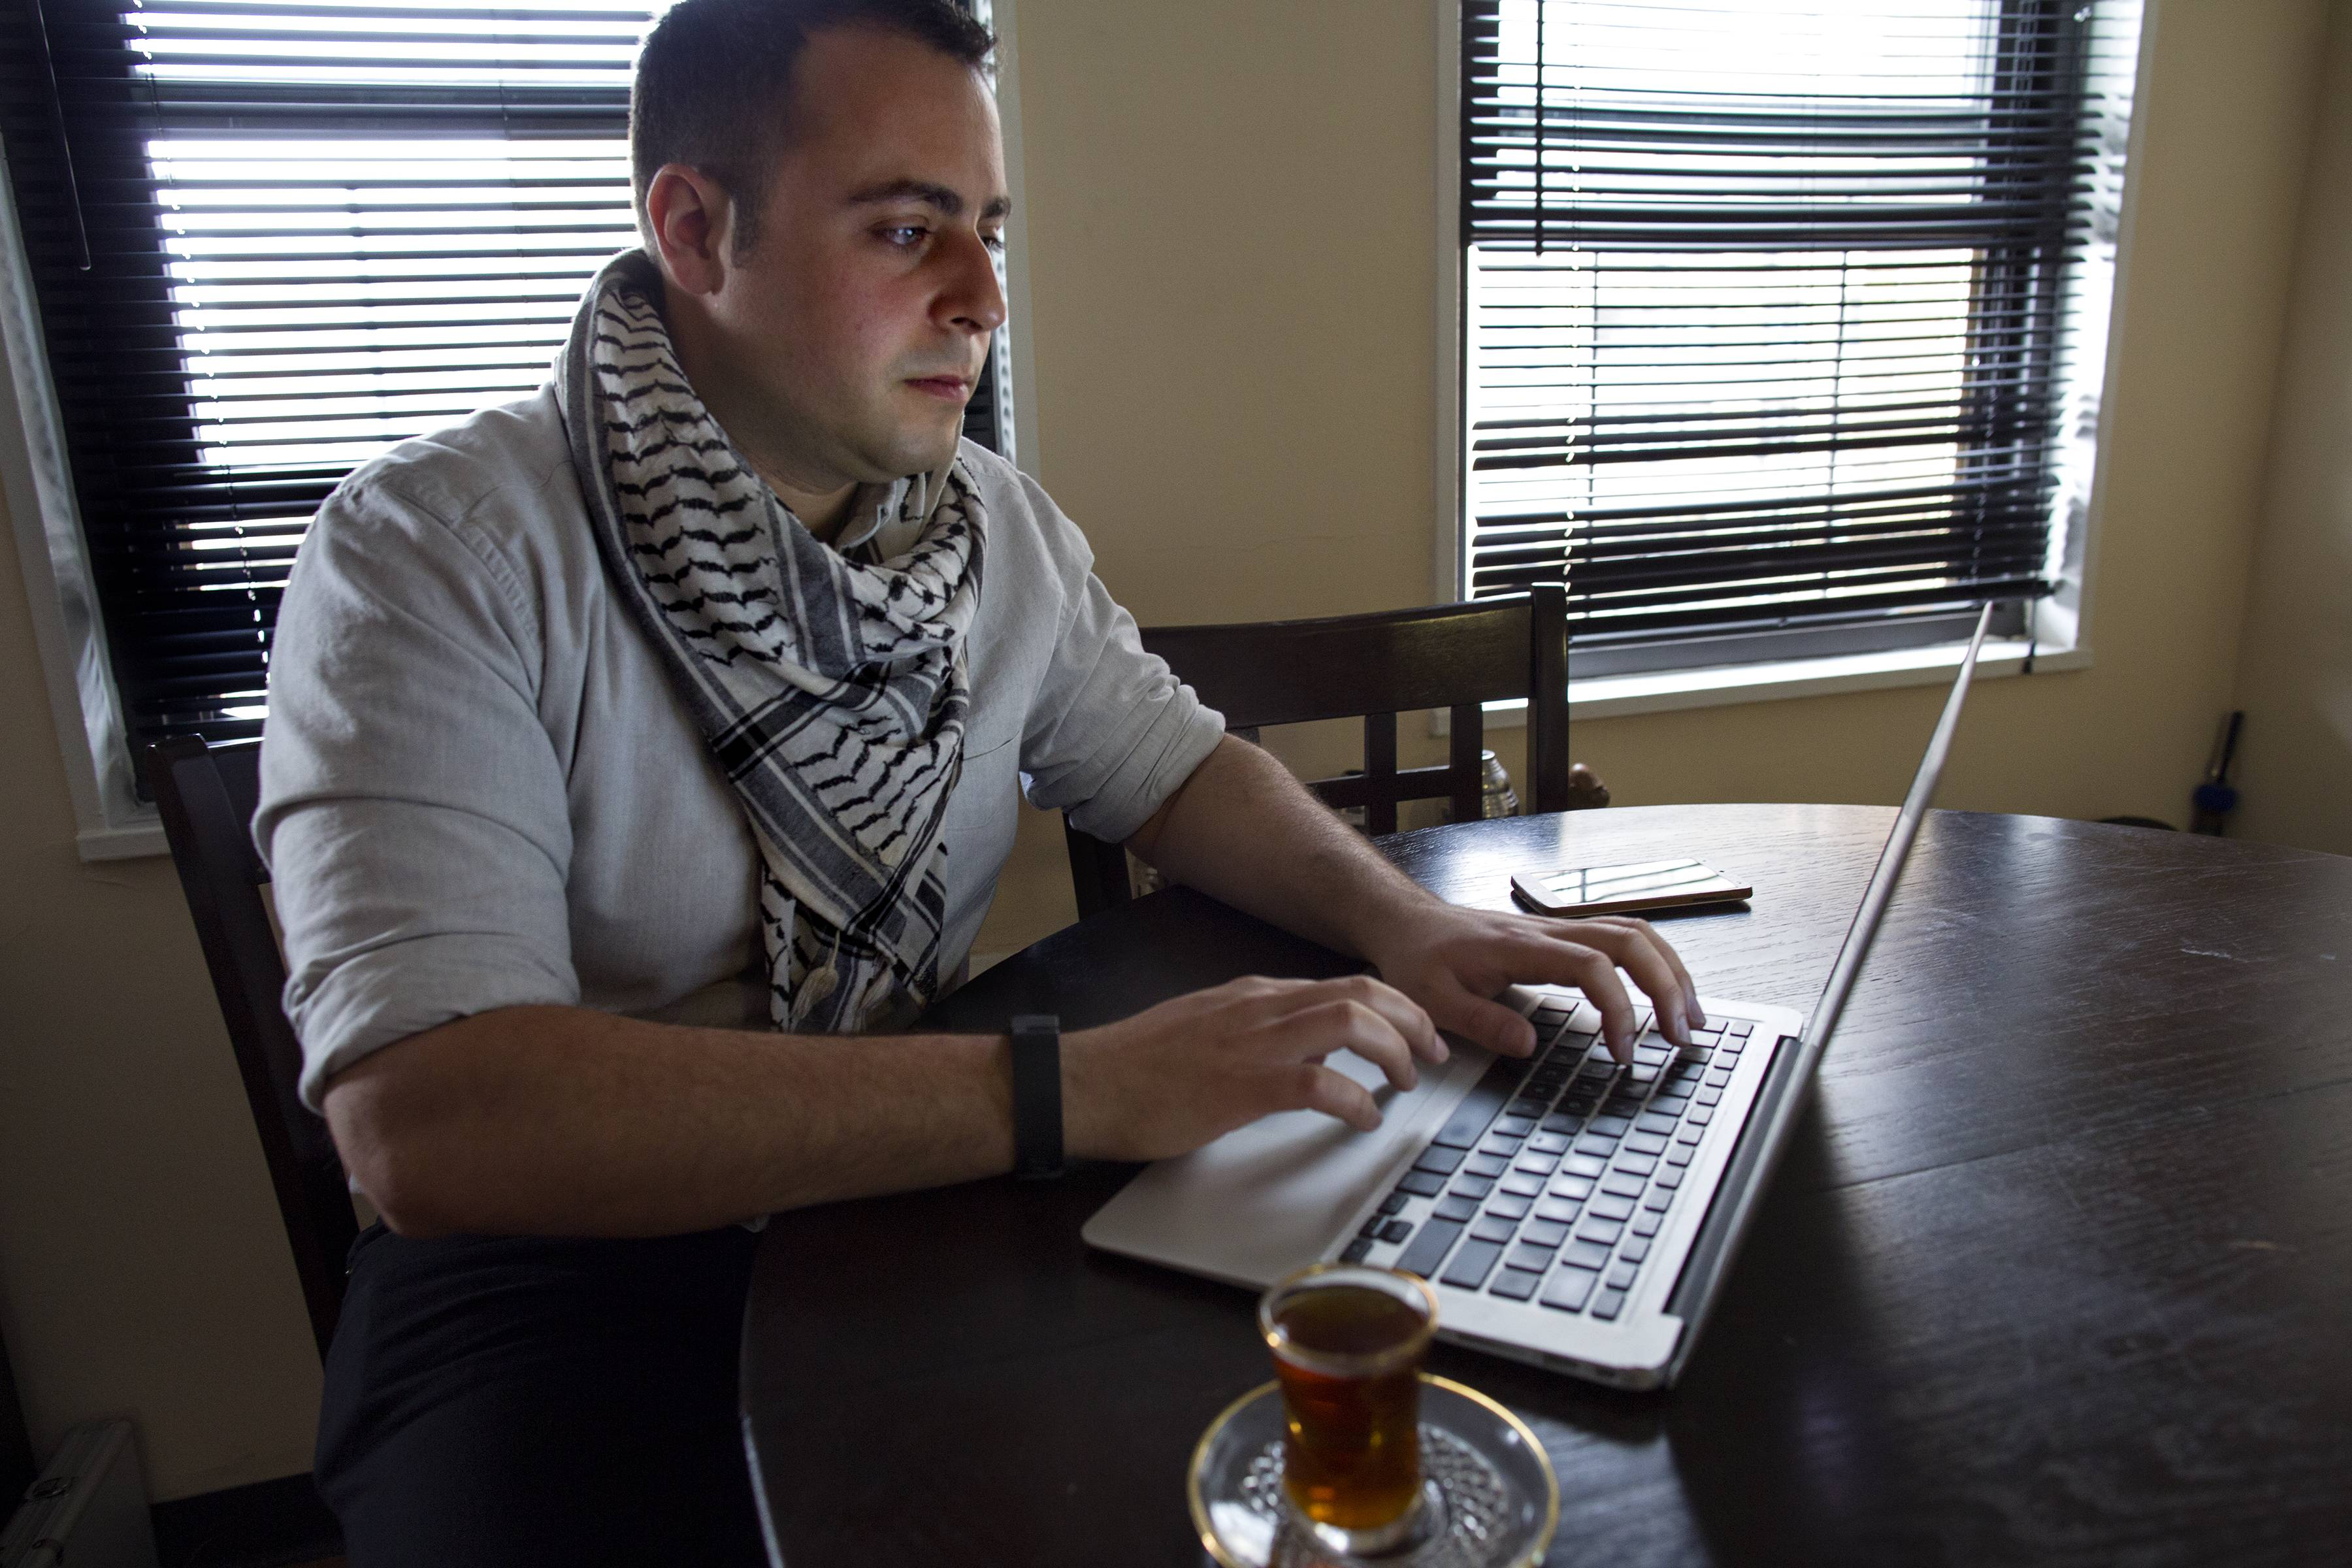 Bashar Makhay answers messages on a computer in his apartment in the Brooklyn borough of New York. Makhay, who is Iraqi-American, Catholic and gay, said he has created Tarab, a series of parties, beach gatherings and other events for LGBT Arabs and Middle Easterners in New York City.